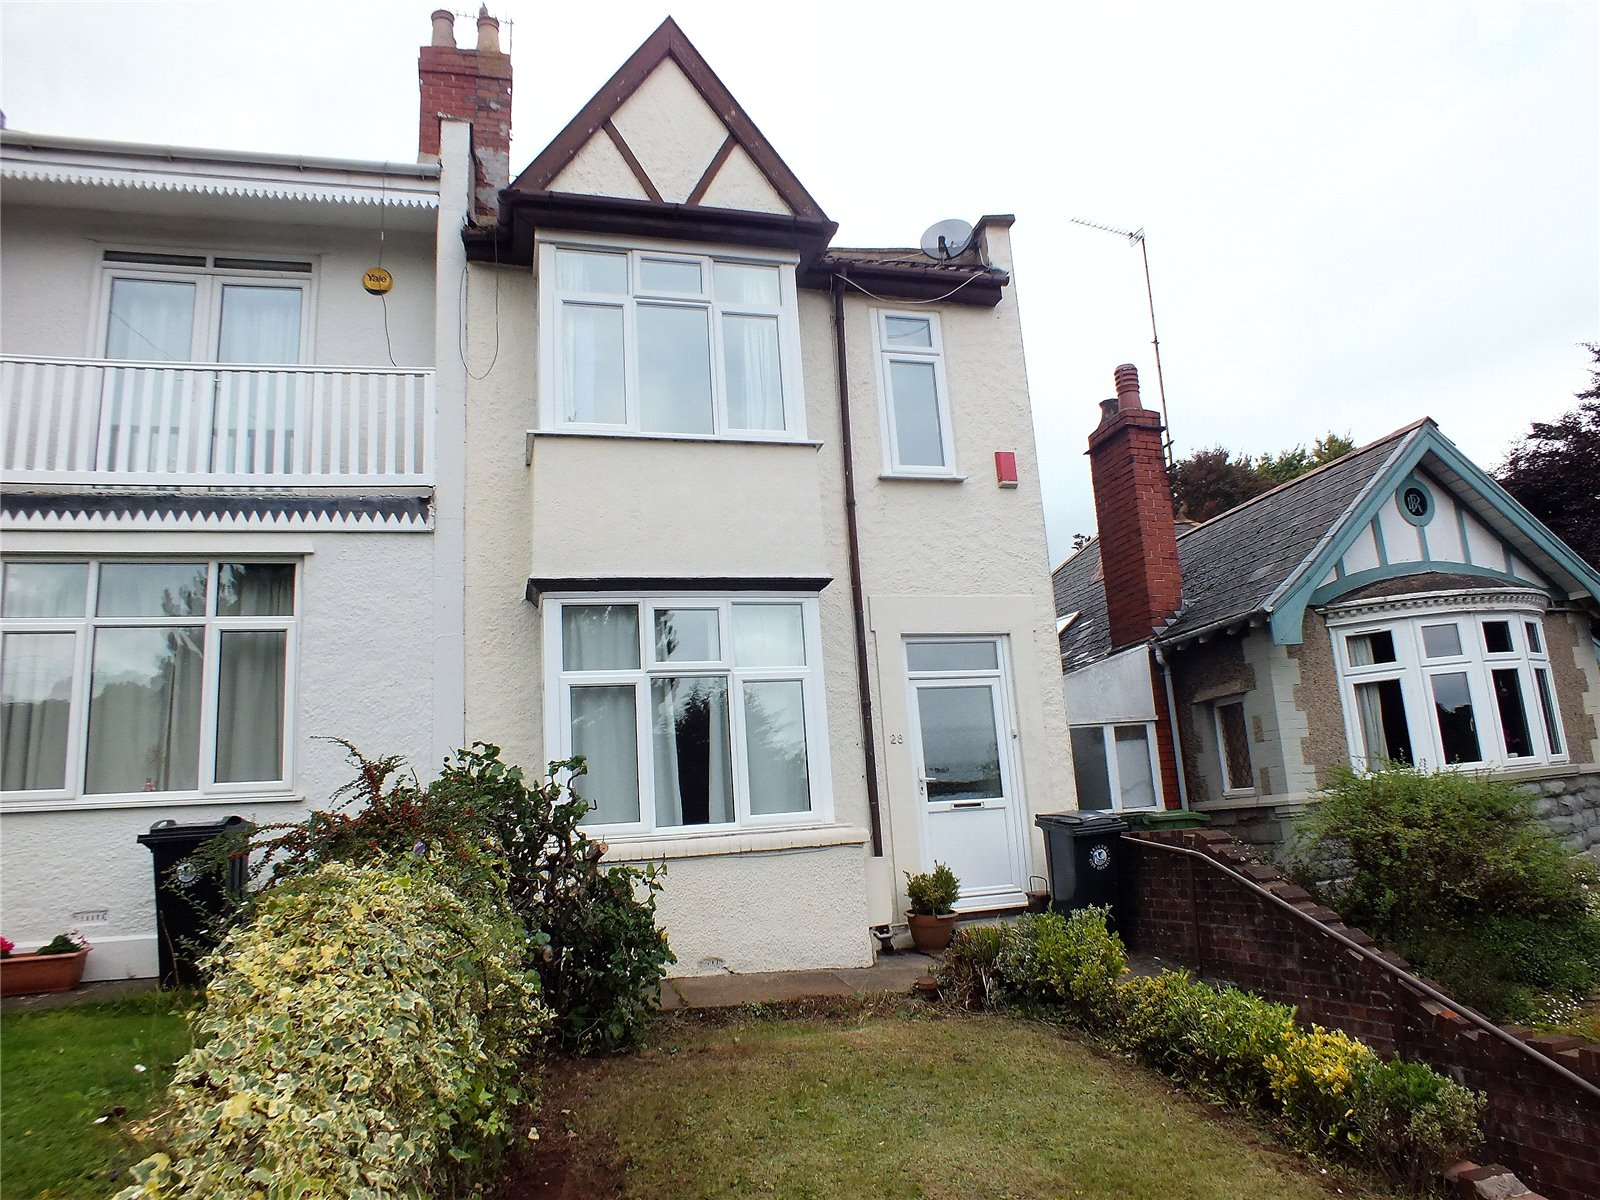 3 Bedrooms Property for sale in Salisbury Road St Annes Bristol BS4